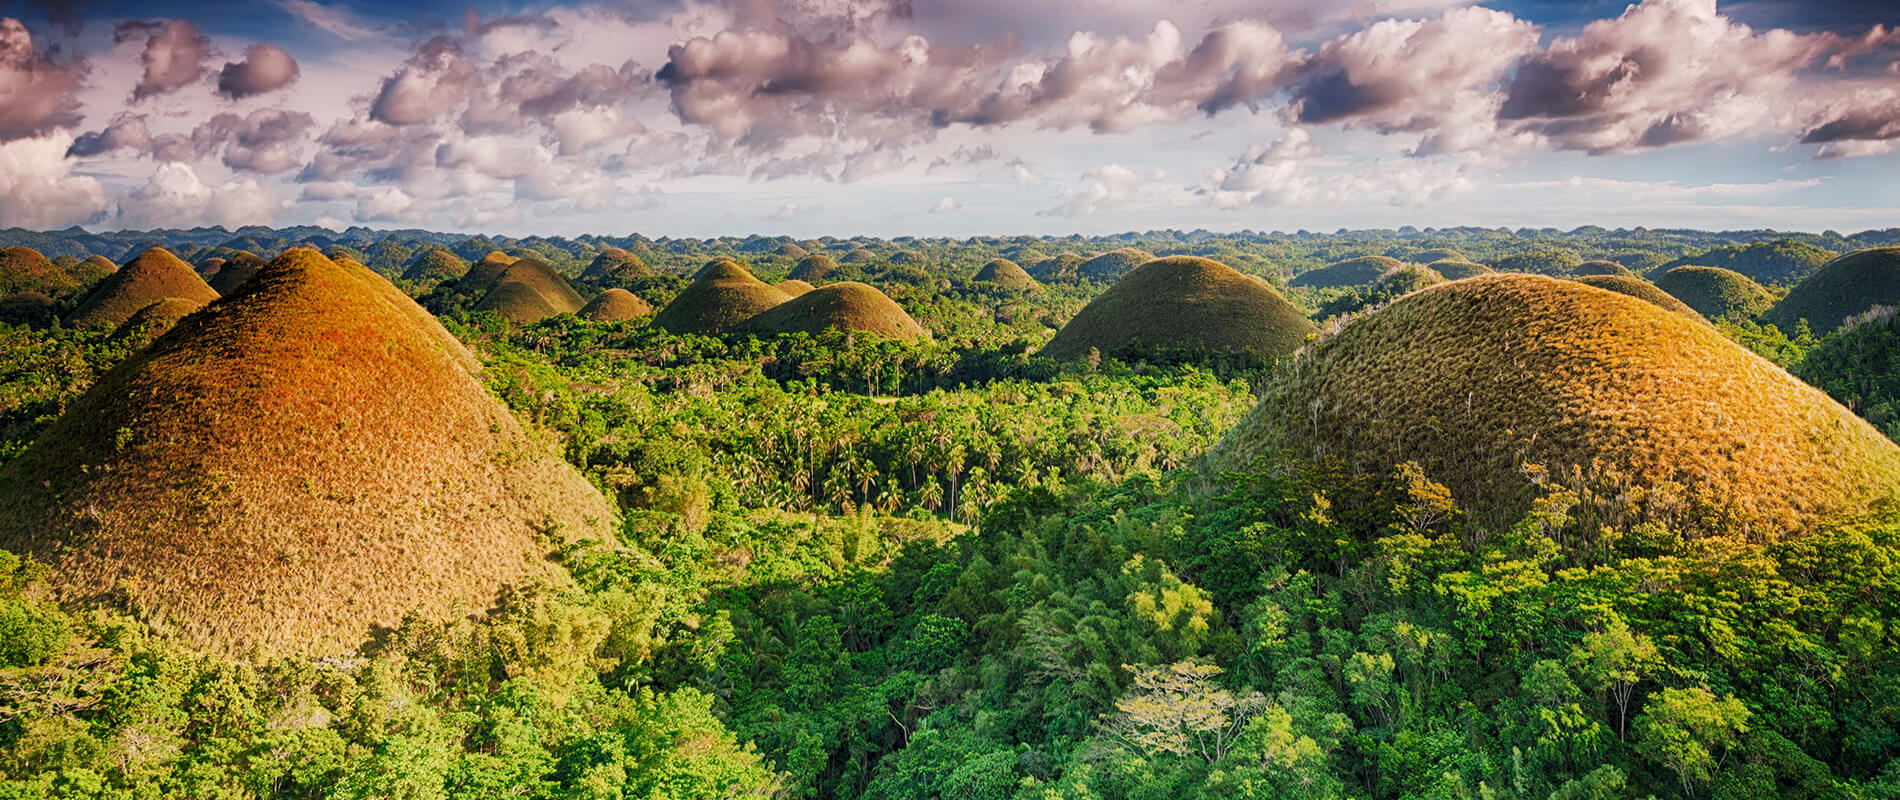 The Chocolate Hills, an Extraordinary Landscape of the Island of Bohol